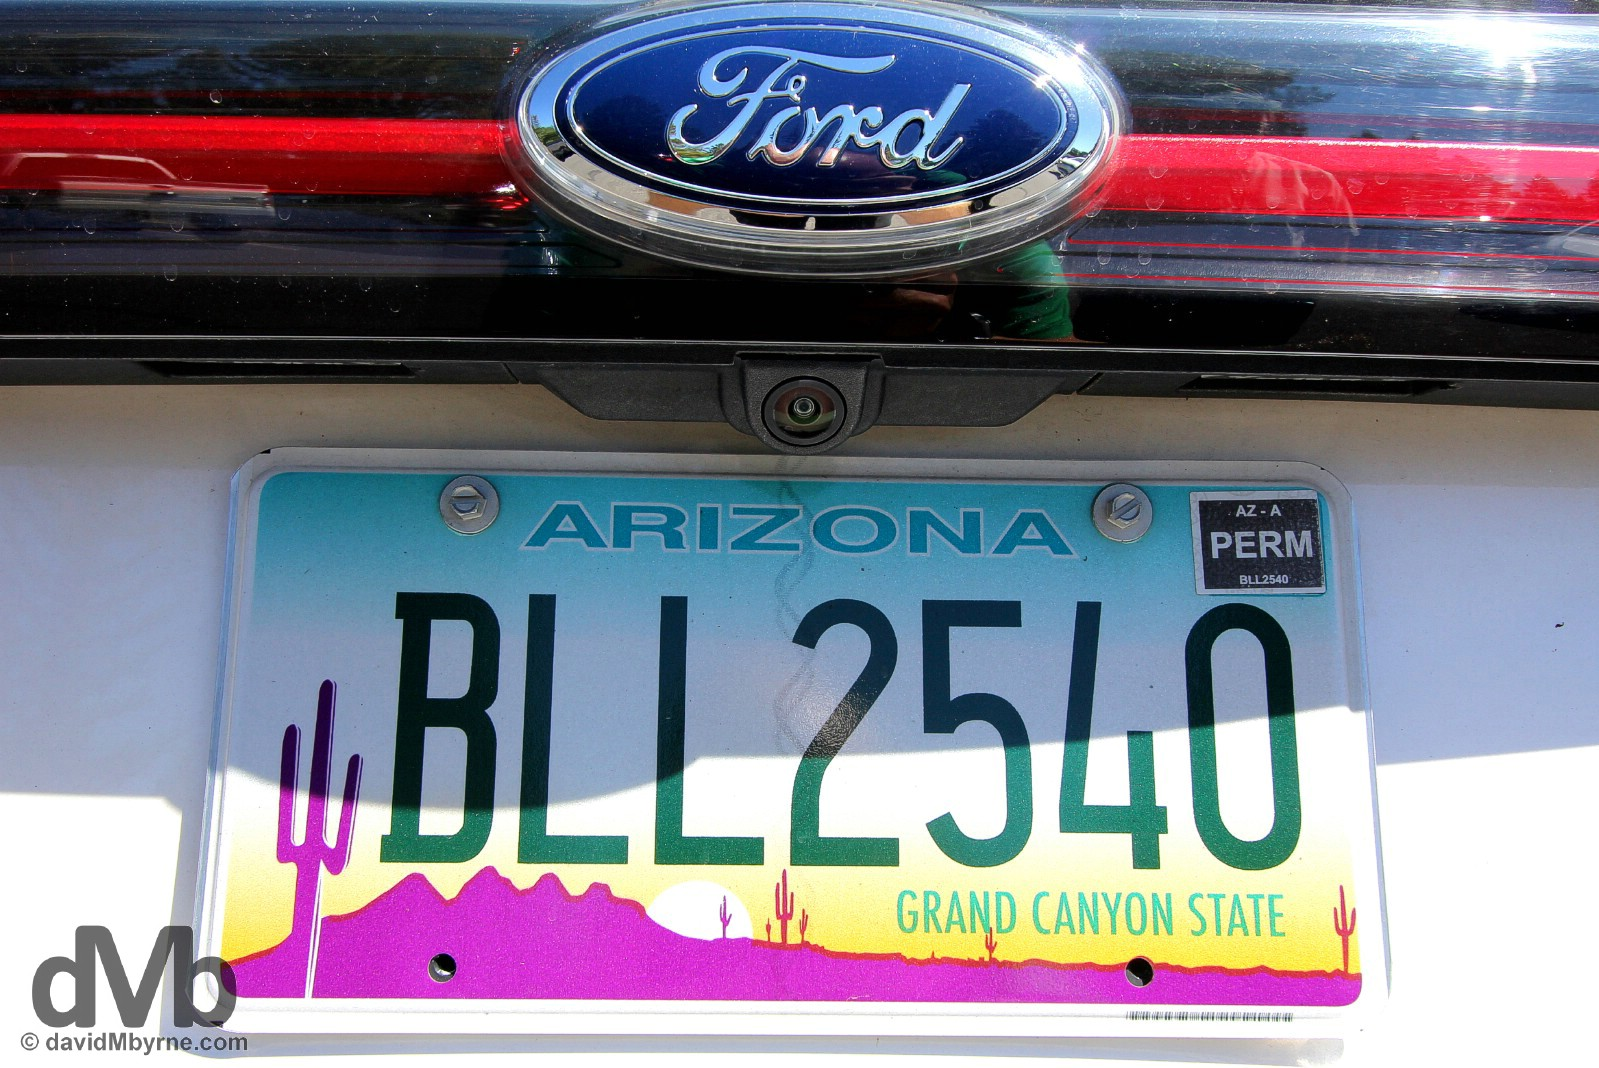 Arizona registration plate. Page, Arizona, USA. September 9, 2016.